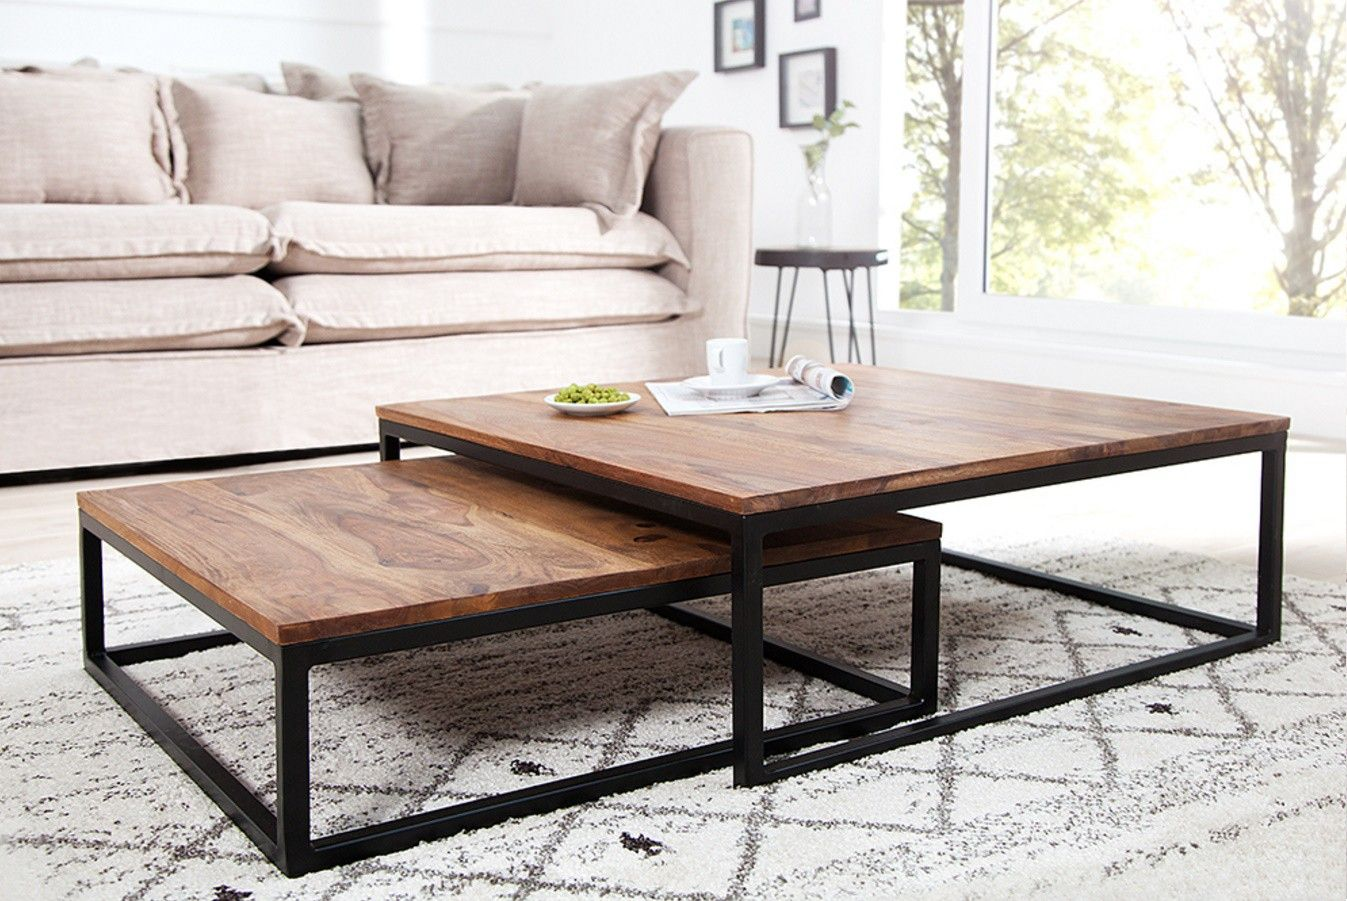 Resultat De Recherche D Images Pour Table Basse Coffee Table Home Coffee Tables Living Room Coffee Table